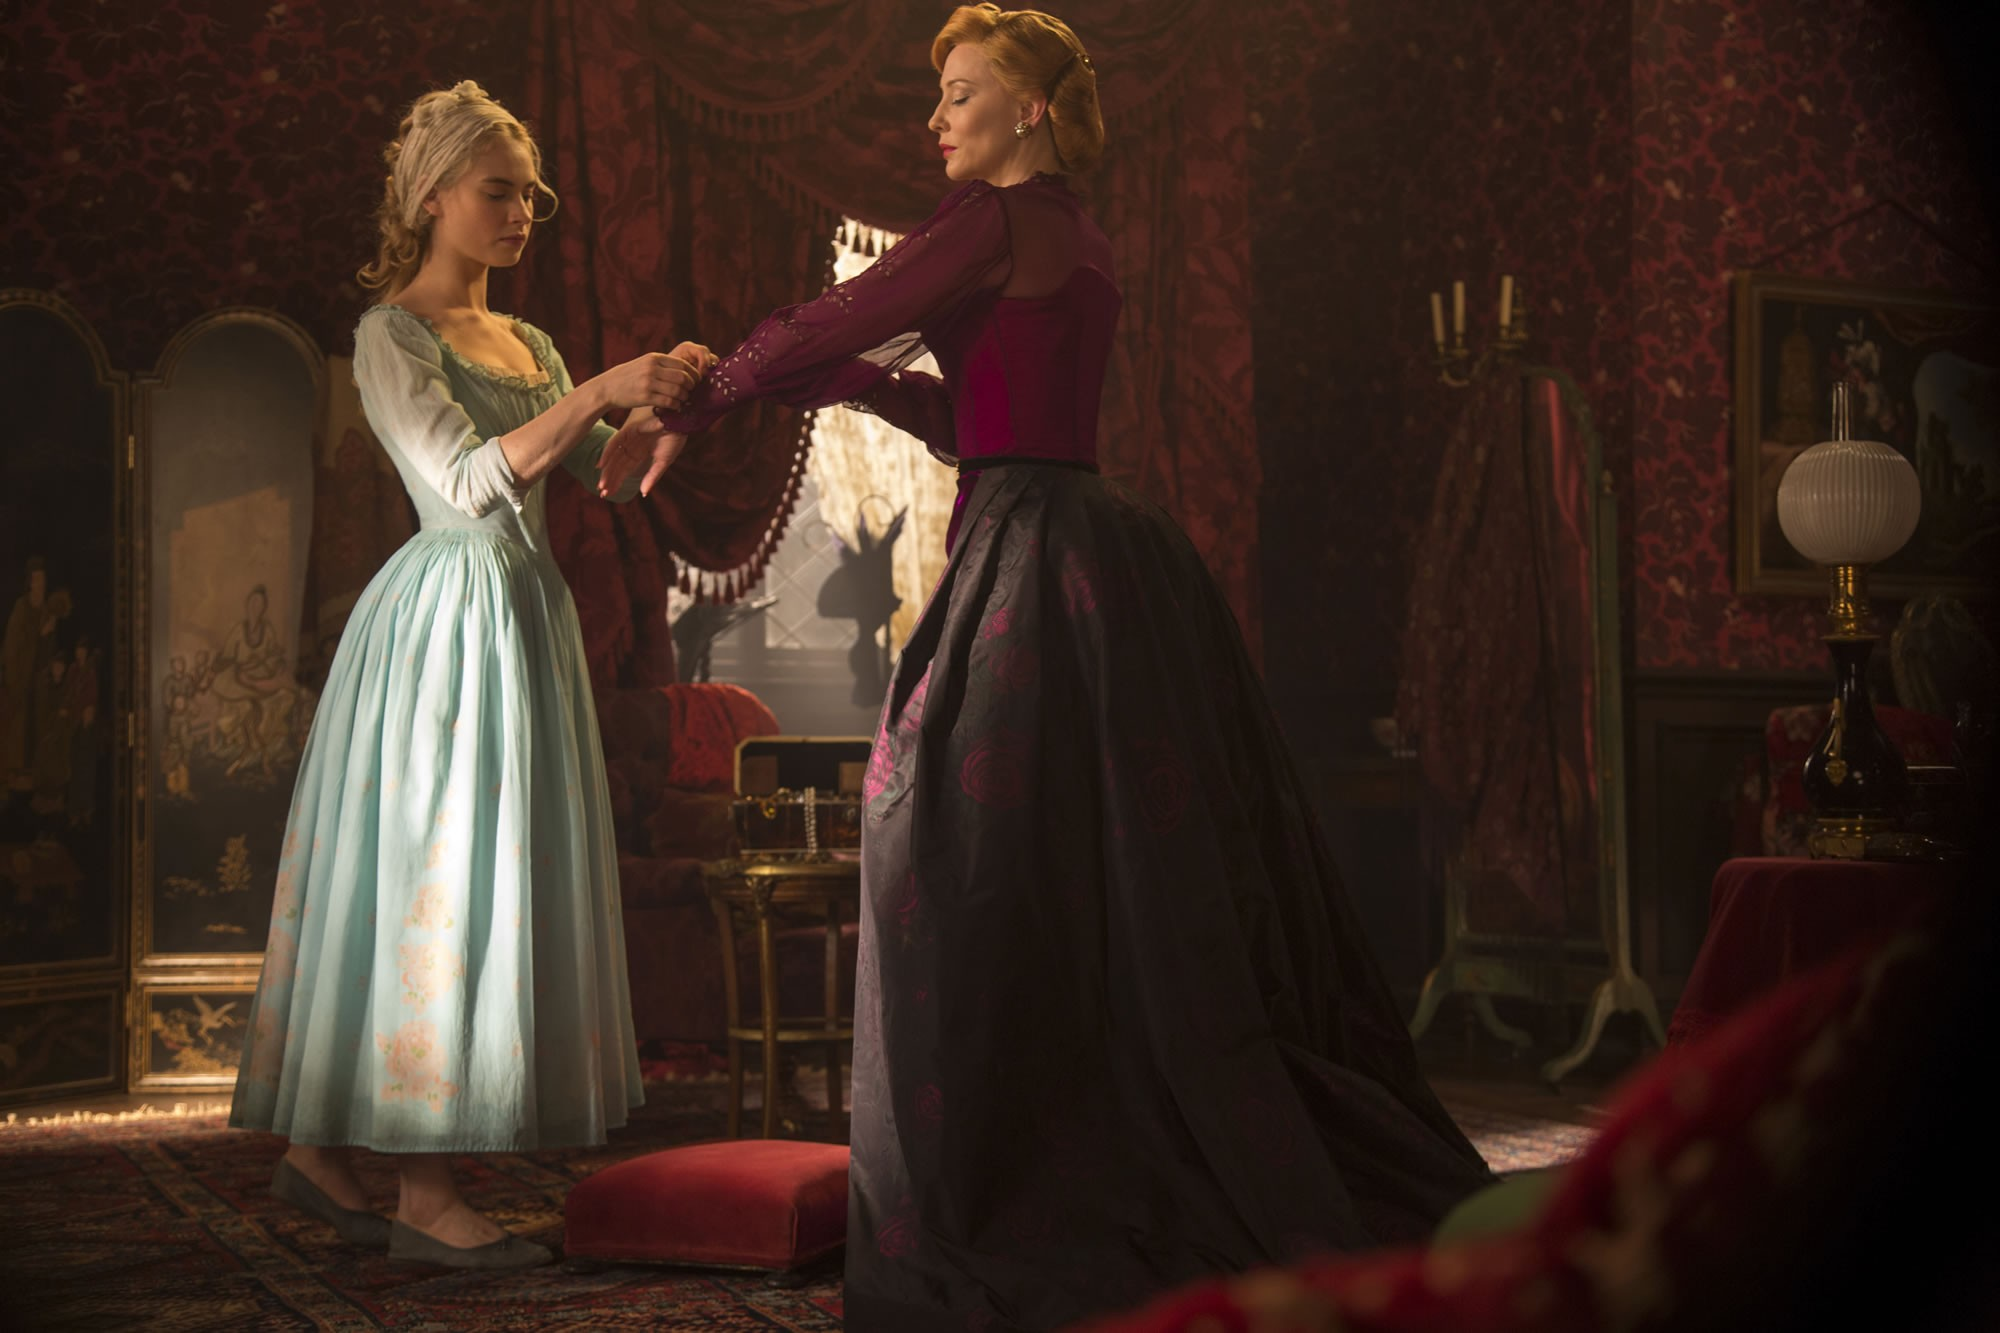 Lily James stars as Cinderella and Cate Blanchett stars as Lady Tremaine in Walt Disney Pictures' Cinderella (2015). Photo credit by Jonathan Olley.